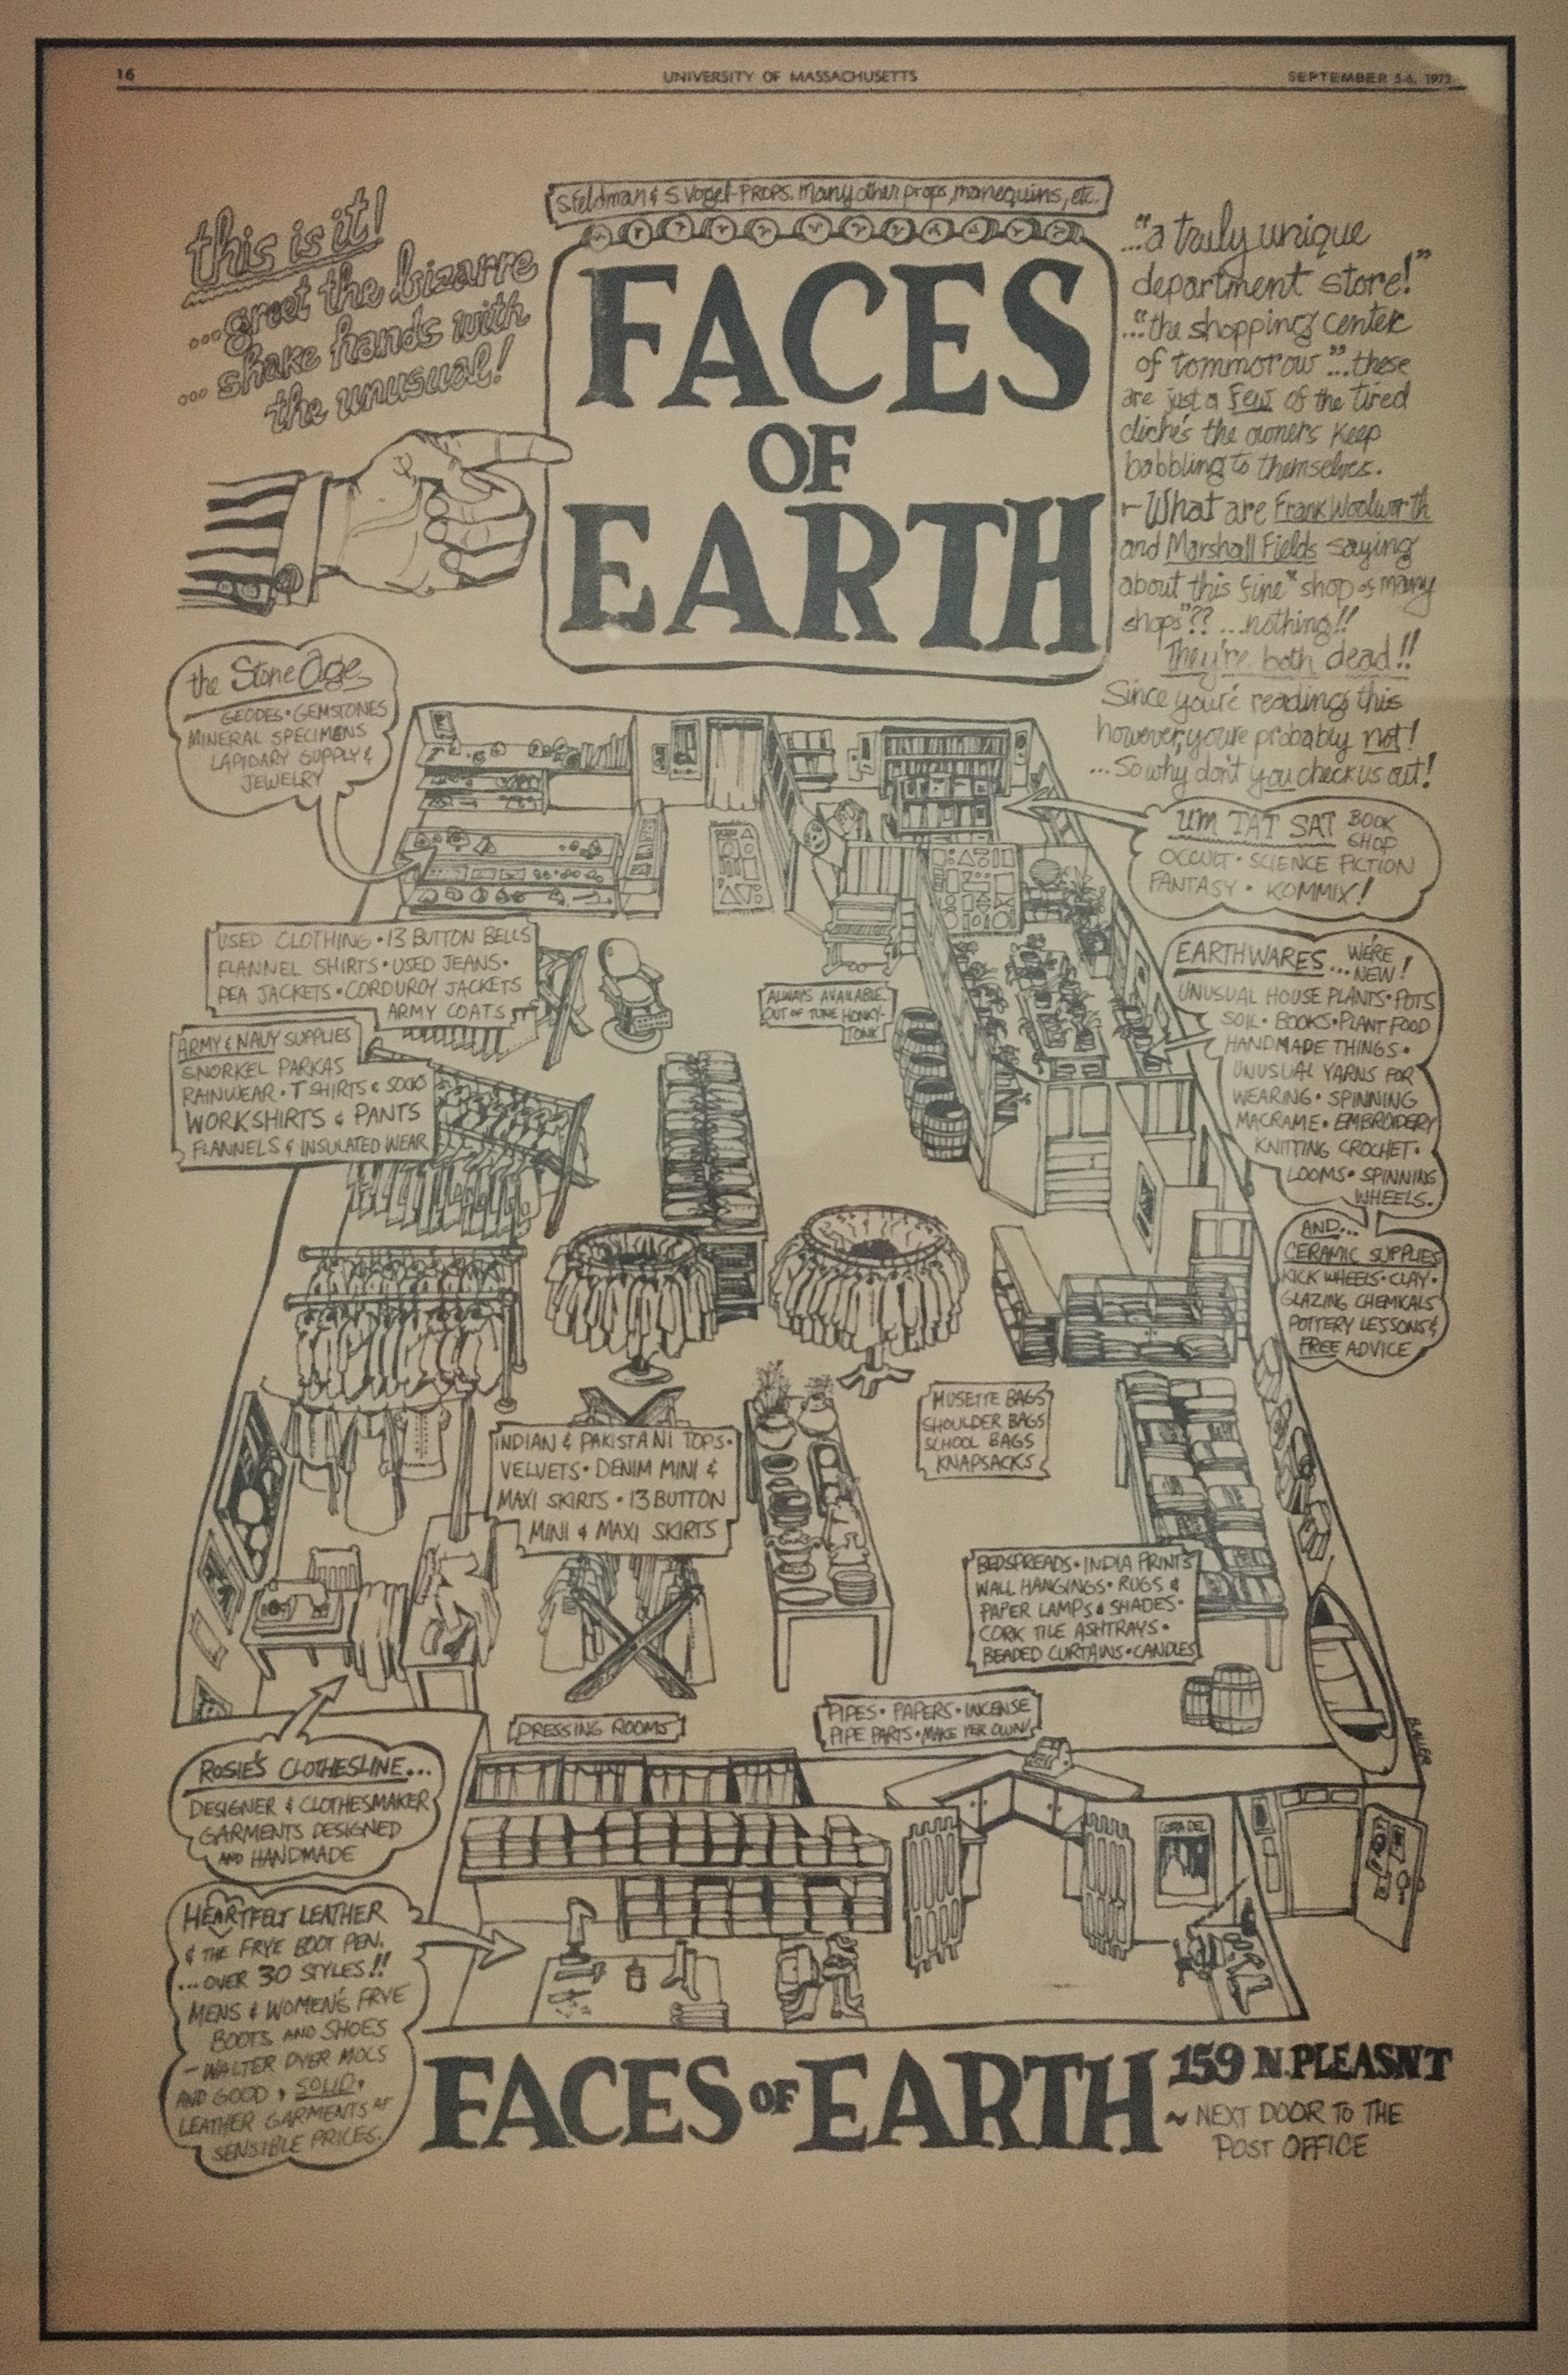 Promotional drawing of the original Faces of Earth in Amherst, Massachusetts, September 5, 1972 UMASS Daily Collegian